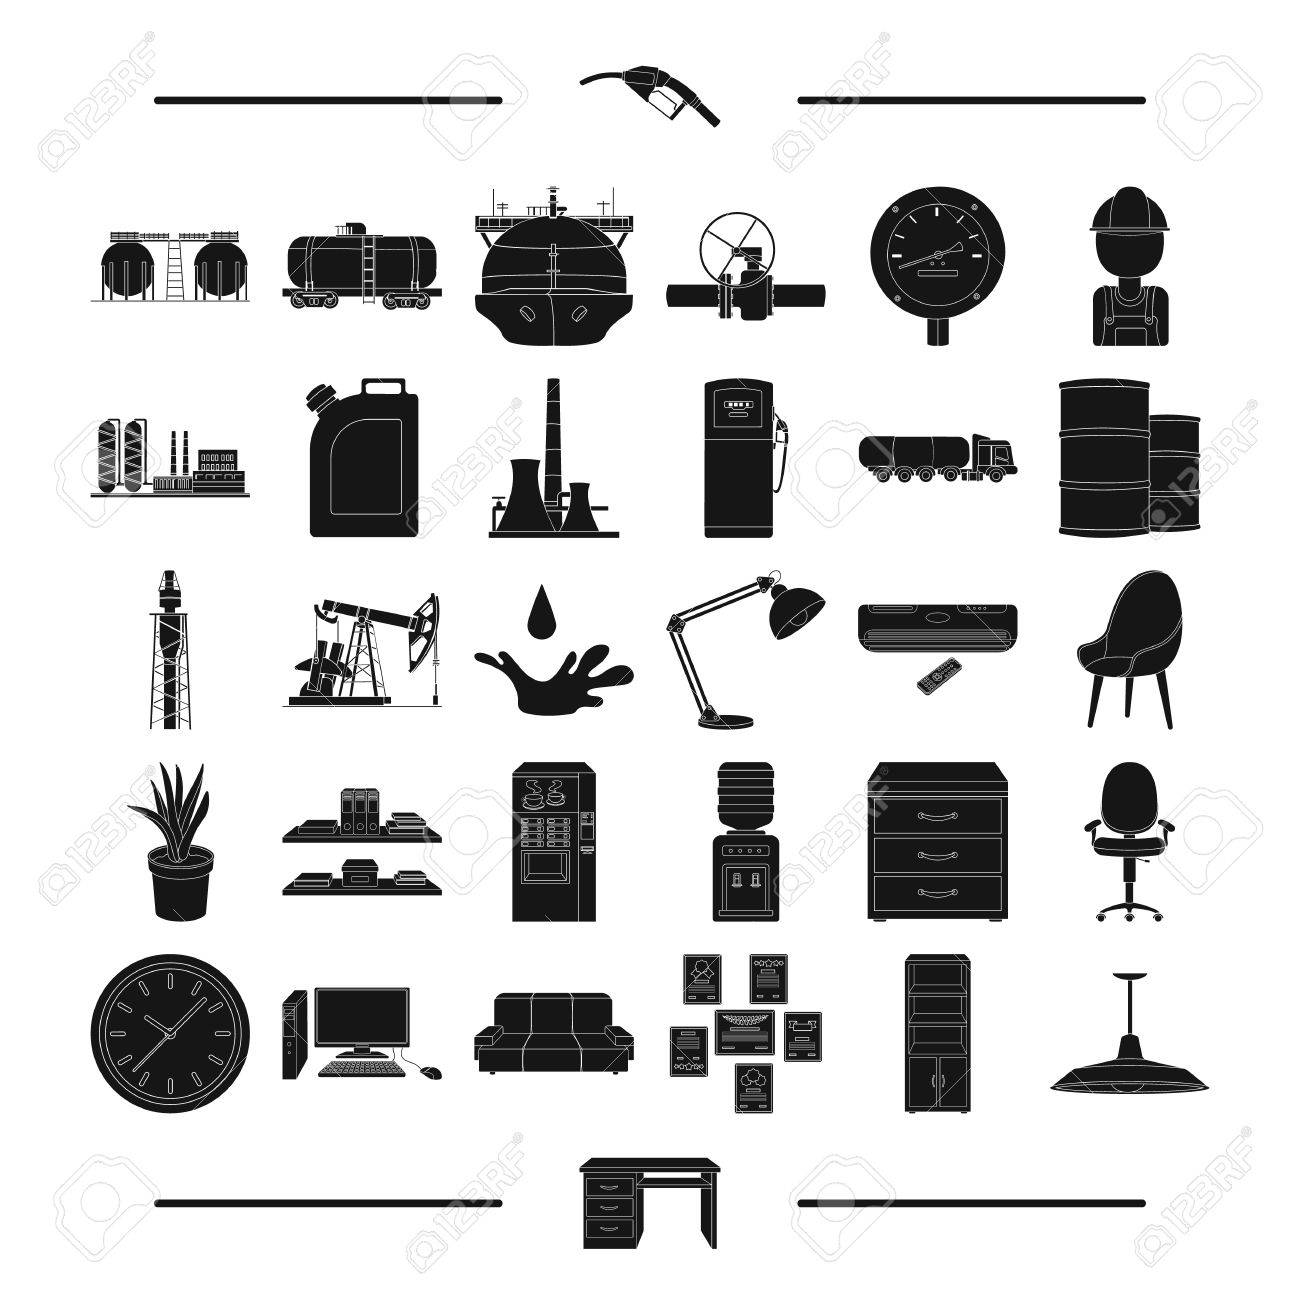 Simple table free other icons - Equipment Progress Ecology And Other Web Icon In Black Style Table Industry